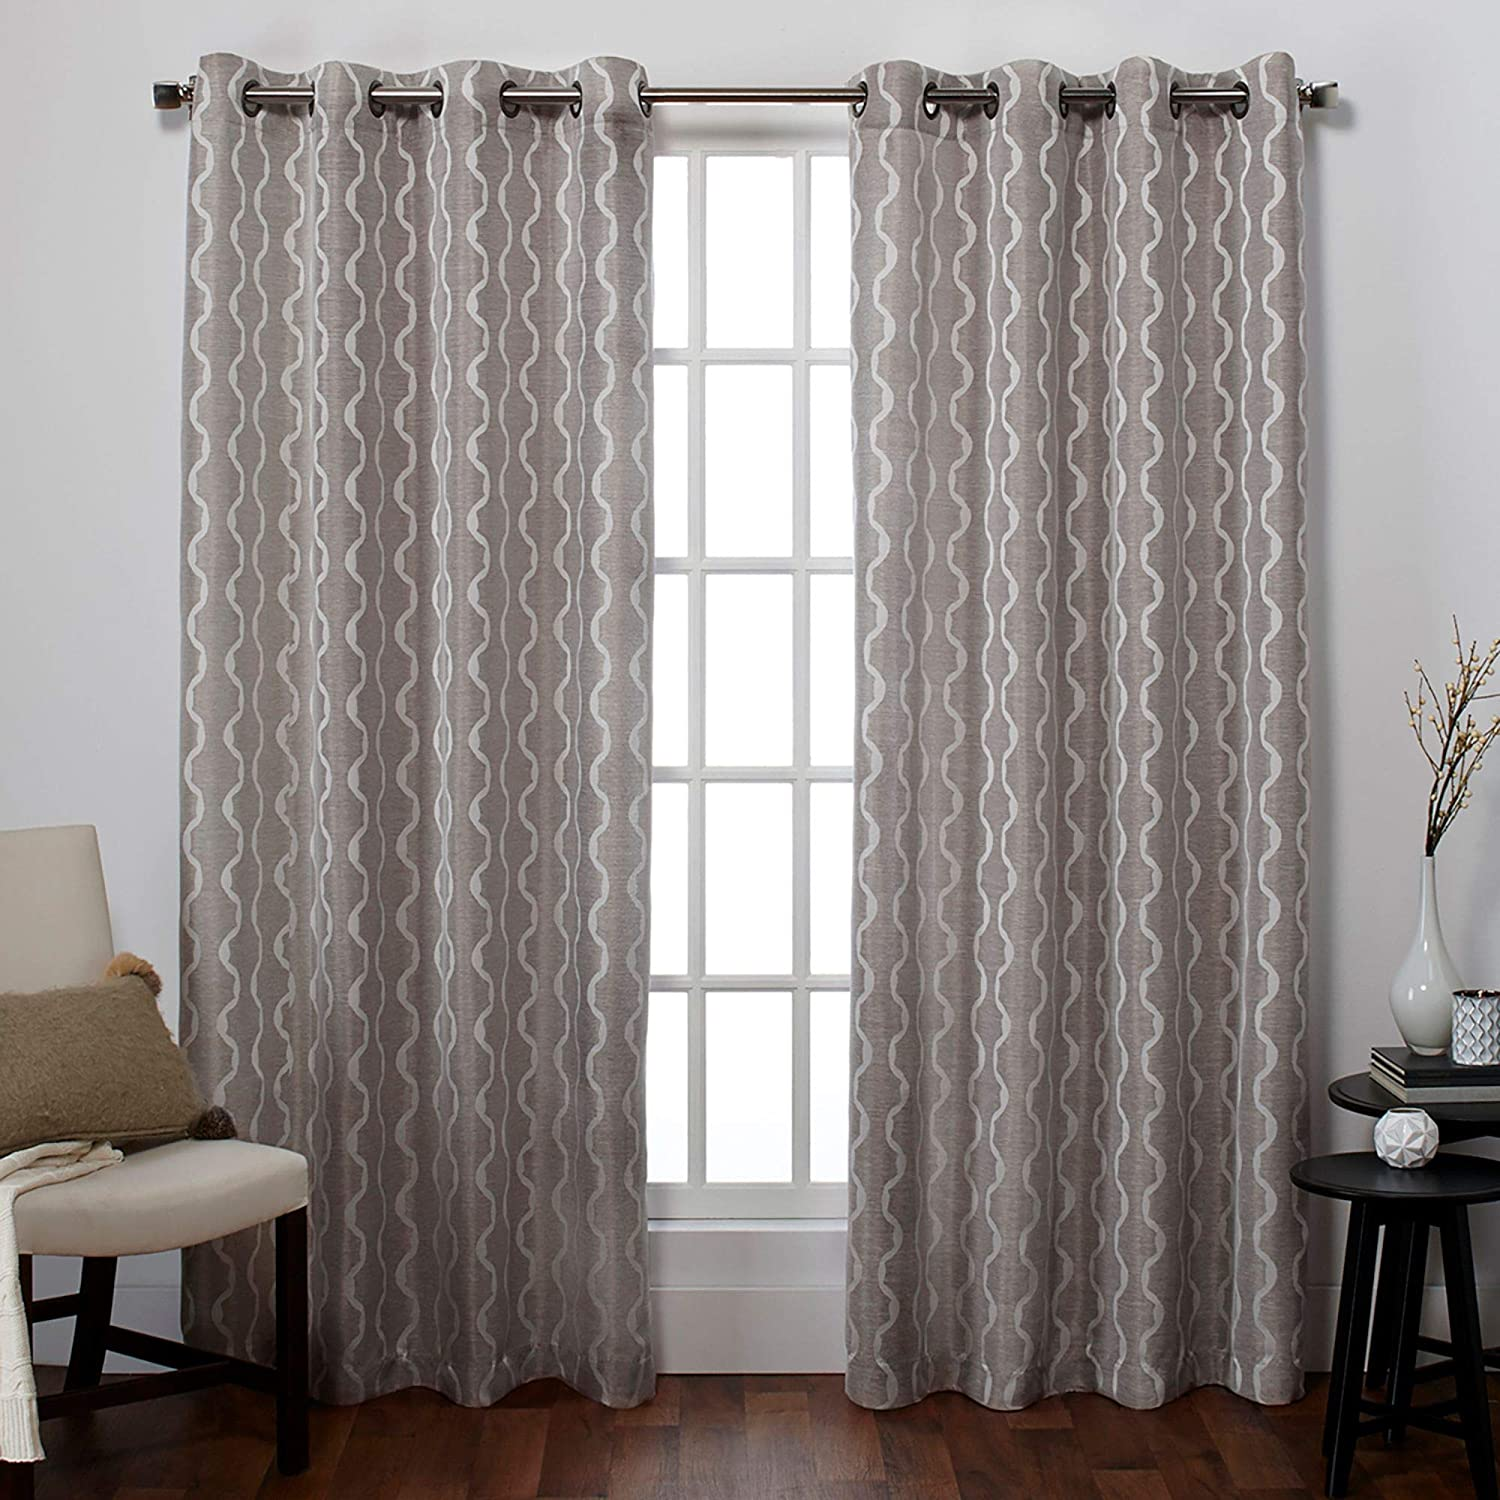 Amazon Com Exclusive Home Baroque Textured Linen Look Jacquard Grommet Top Curtain Panel Pair Pewter 54x84 Home Kitchen